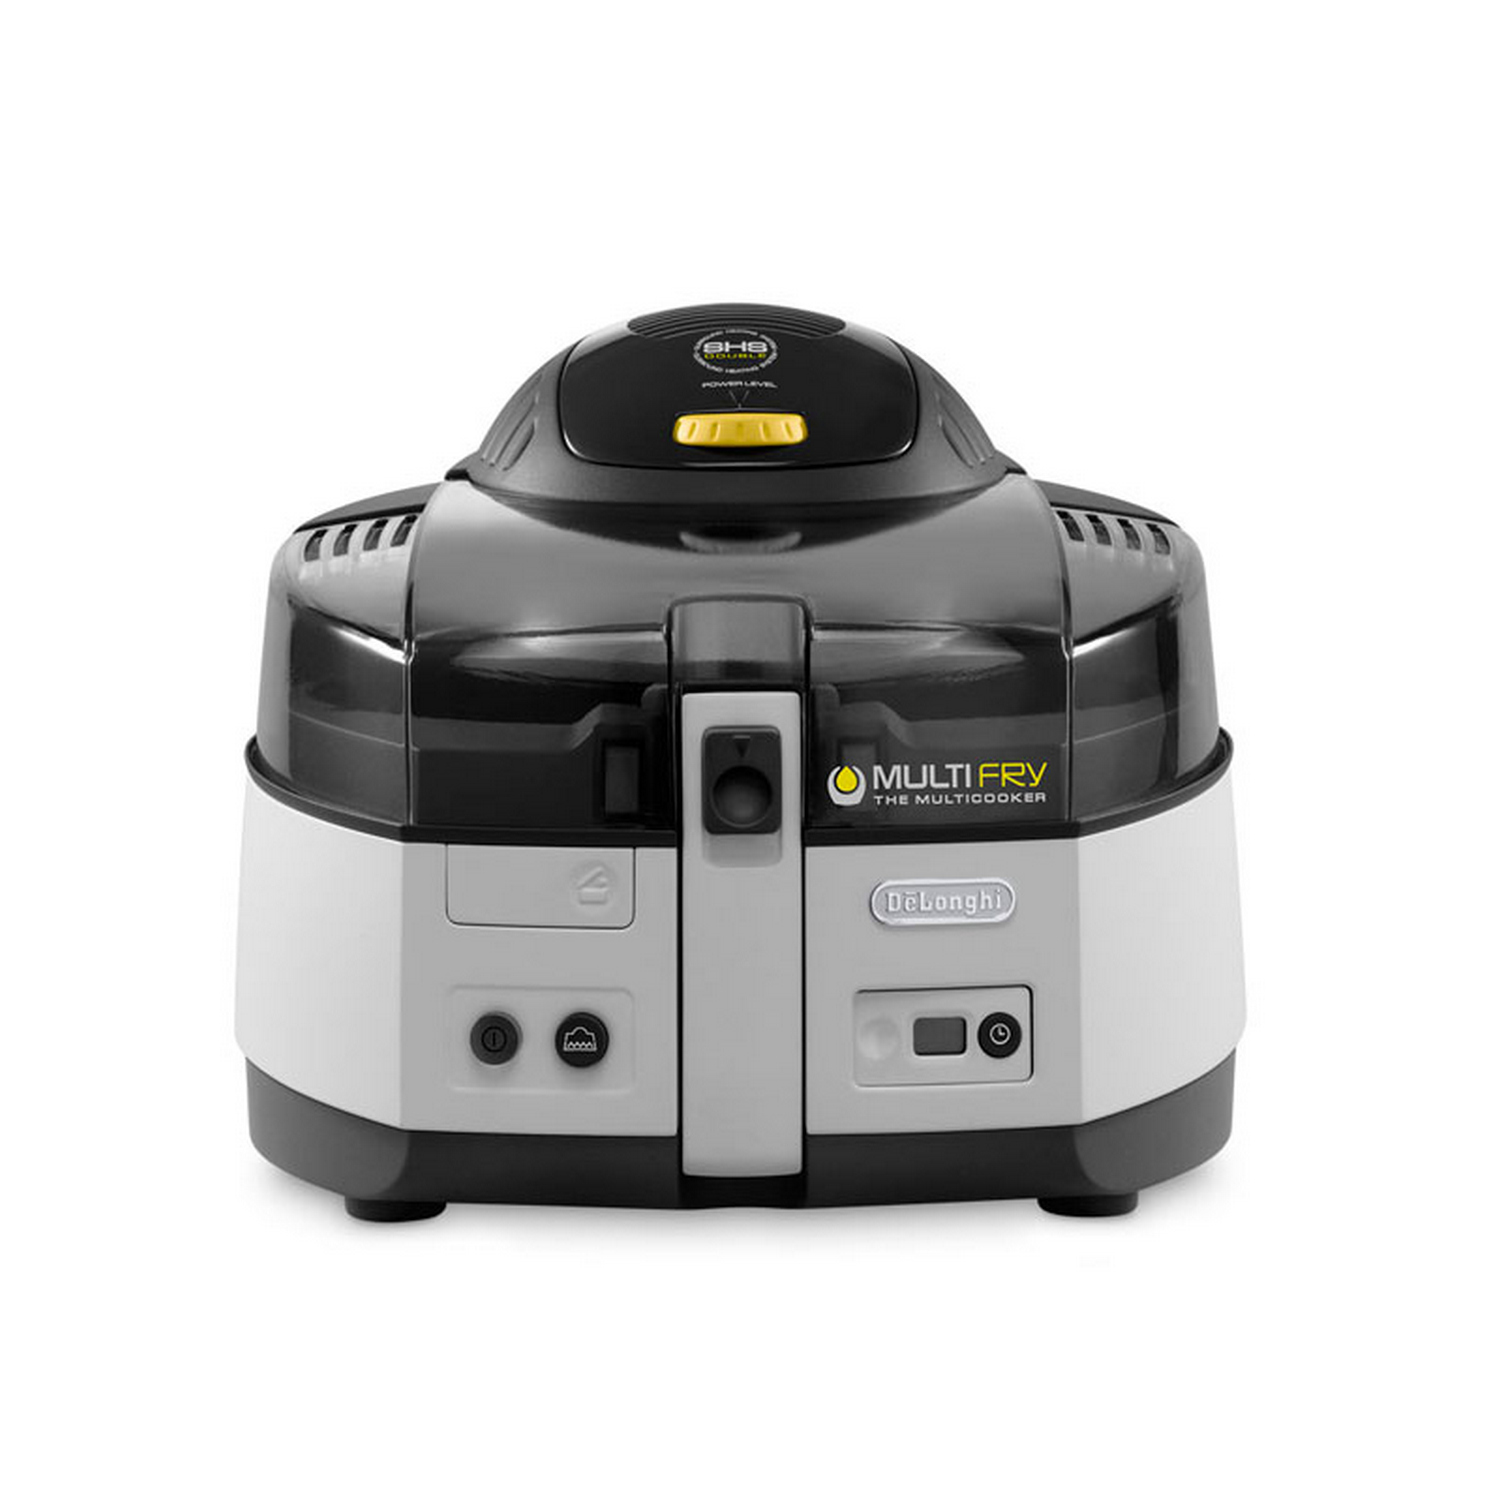 Delonghi FH1163 Multifry Fritteuse HEIßLUFT FRITTEUSE & MULTICOOKER